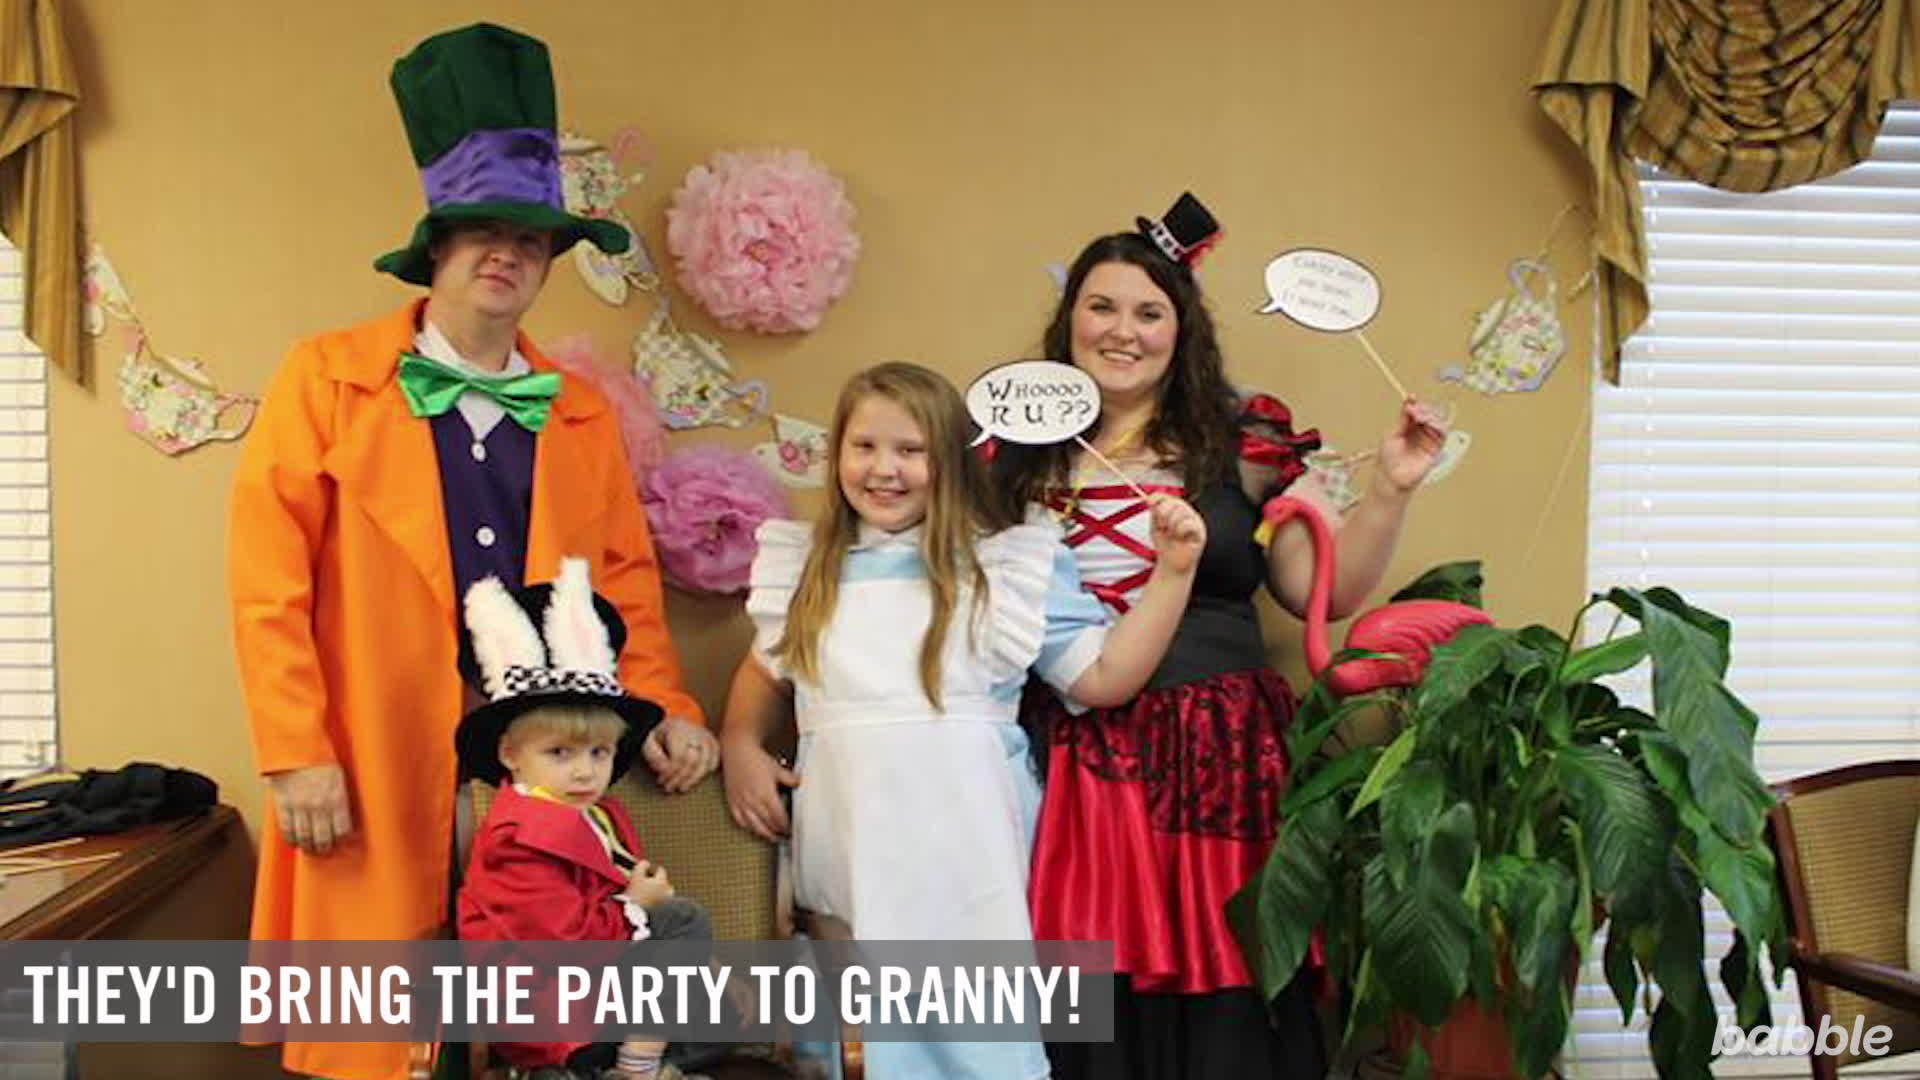 10-Year-Old Moves 'Alice in Wonderland' Birthday to Grandma's Nursing Home